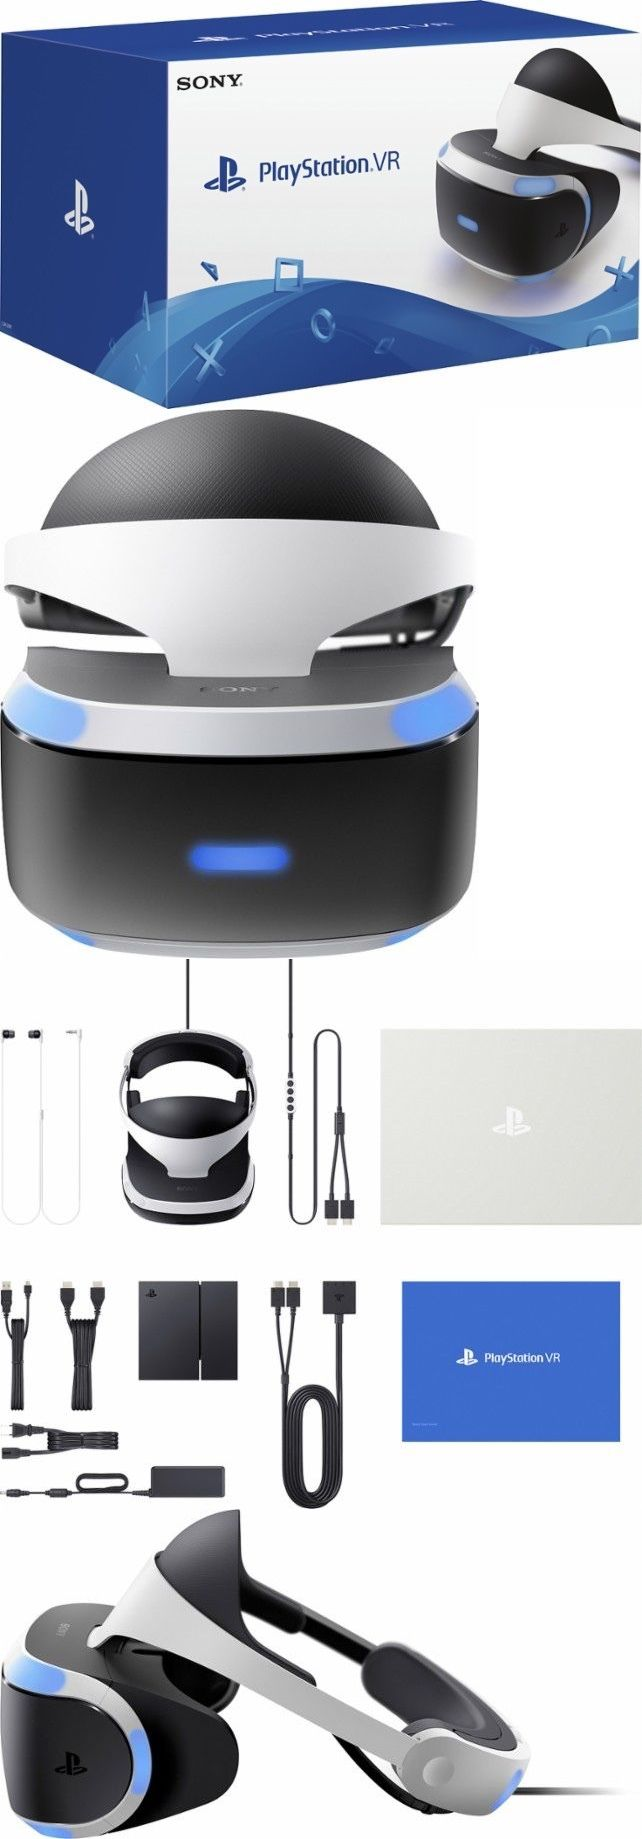 PC and Console VR Headsets: Playstation Vr Headset - Sony Virtual Reality For Ps4 (New Retail Sealed Box) -> BUY IT NOW ONLY: $374.99 on eBay!